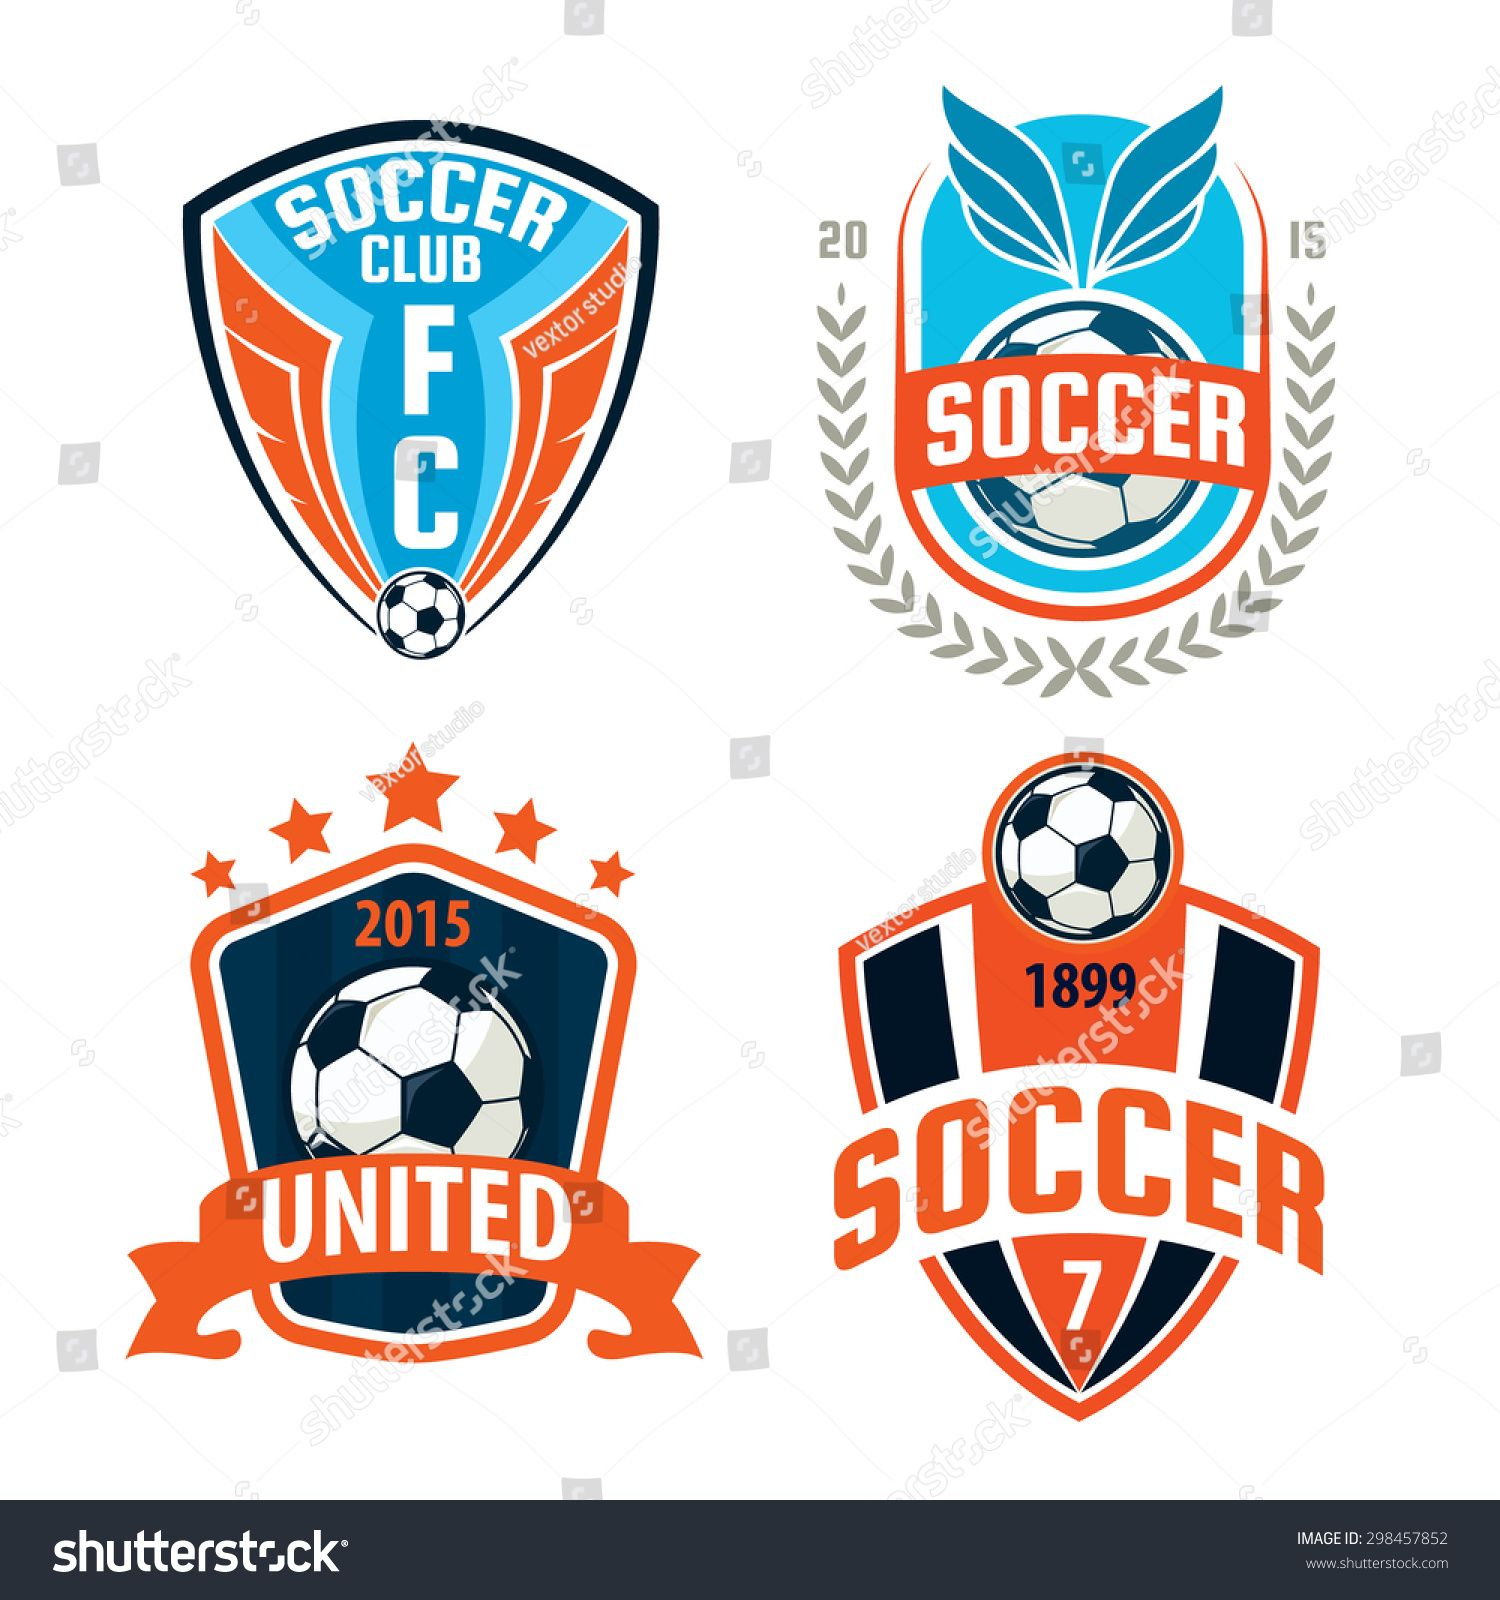 Football Badge Logo Template Design Soccer Team Vector Illustration Football Logo Design Sports Logo Design Football Logo